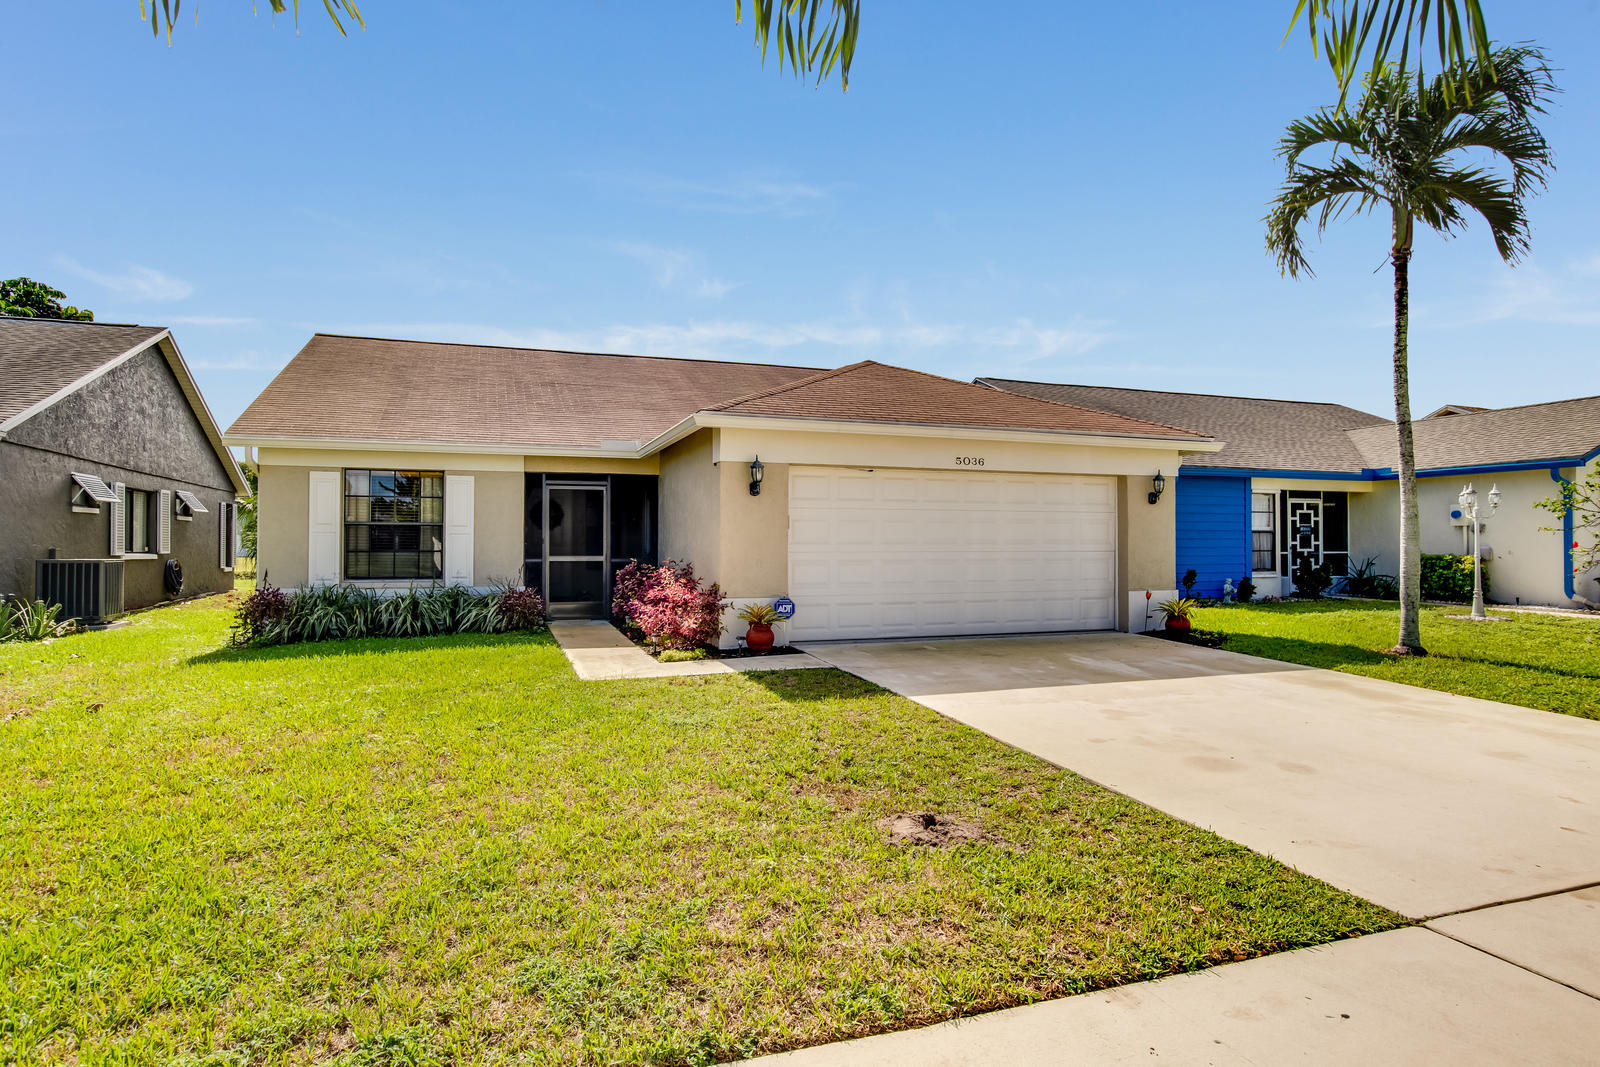 5036 Arbor Glen Circle, Lake Worth, FL | MLS# RX-10481546